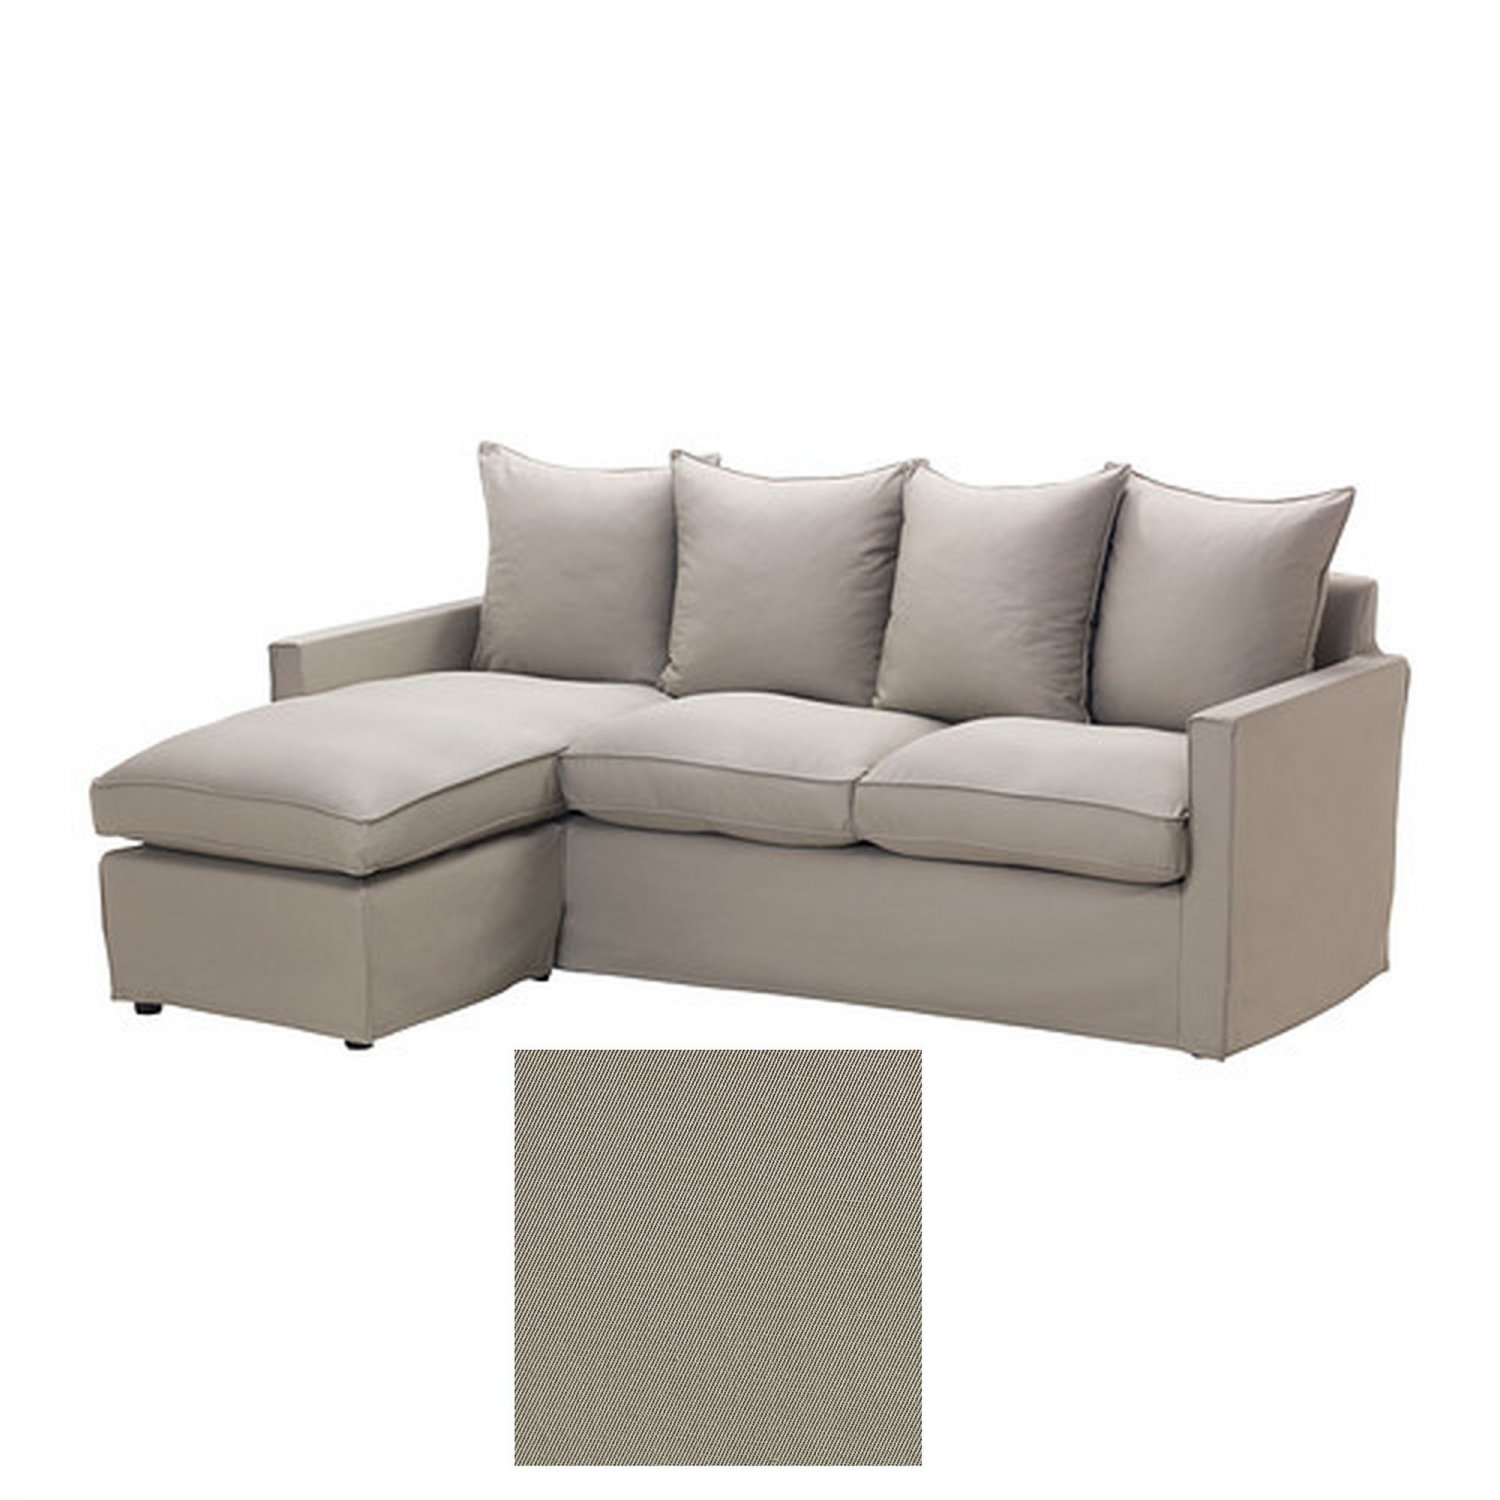 Ikea harnosand 2 seat loveseat sofa with chaise slipcover for Chaise couch slipcover